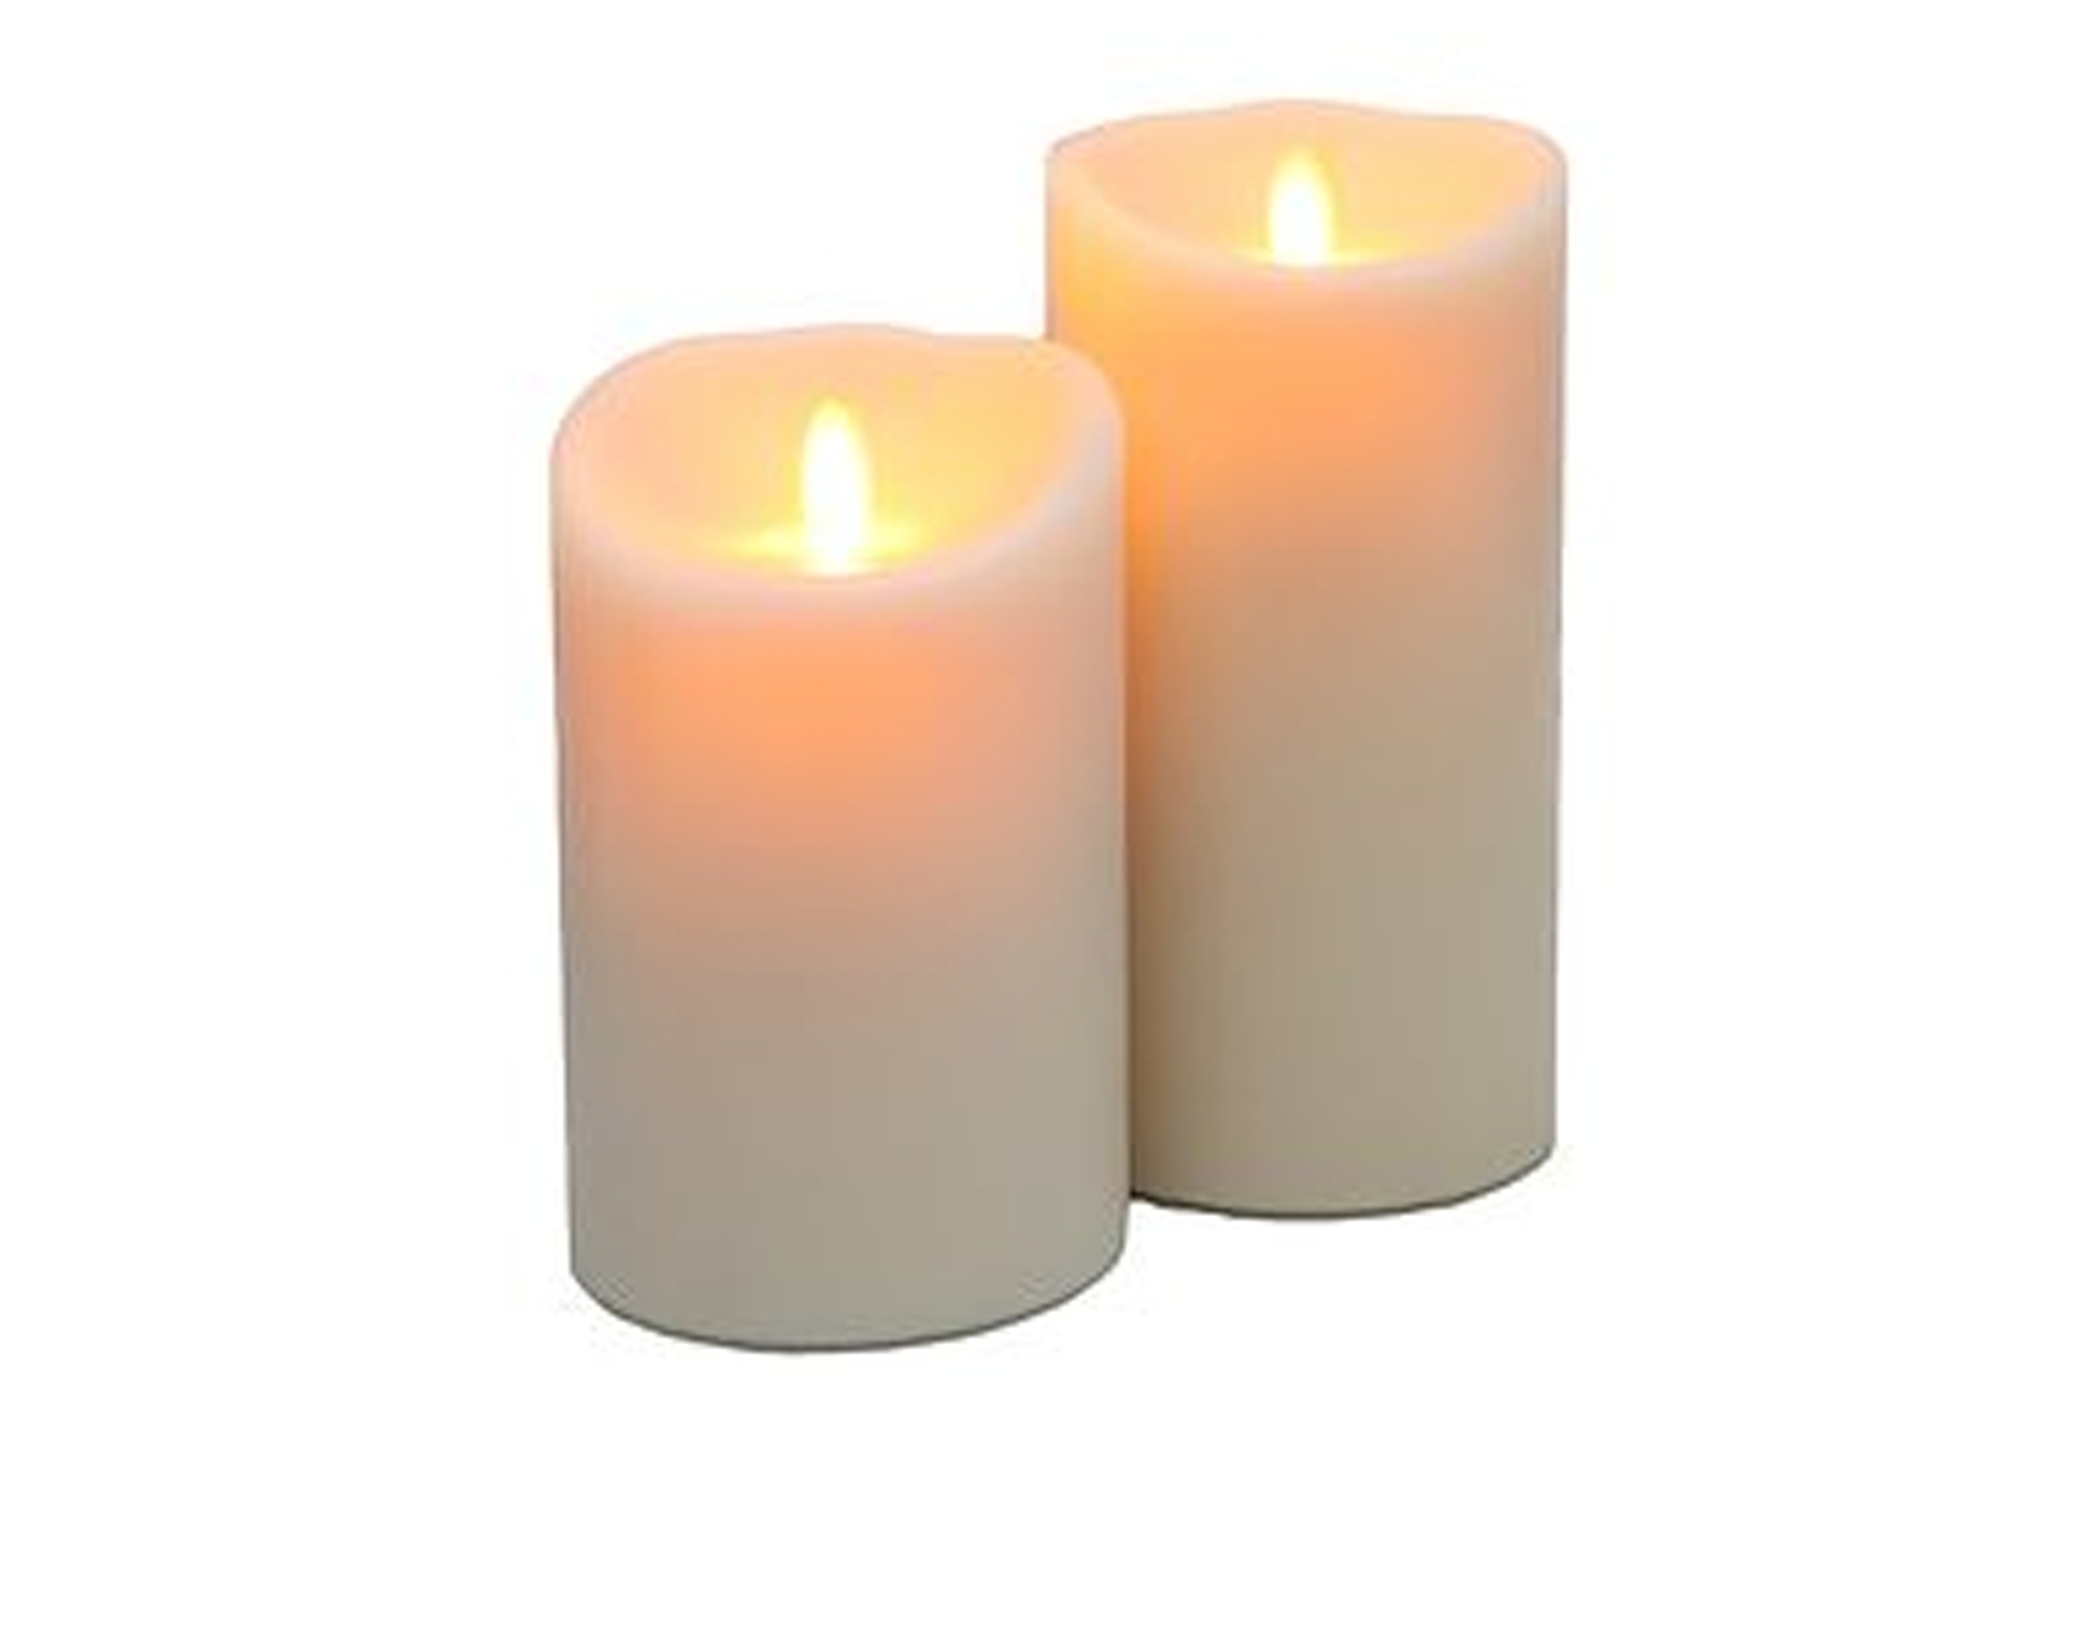 graphic download Png candles free images. Transparent candle